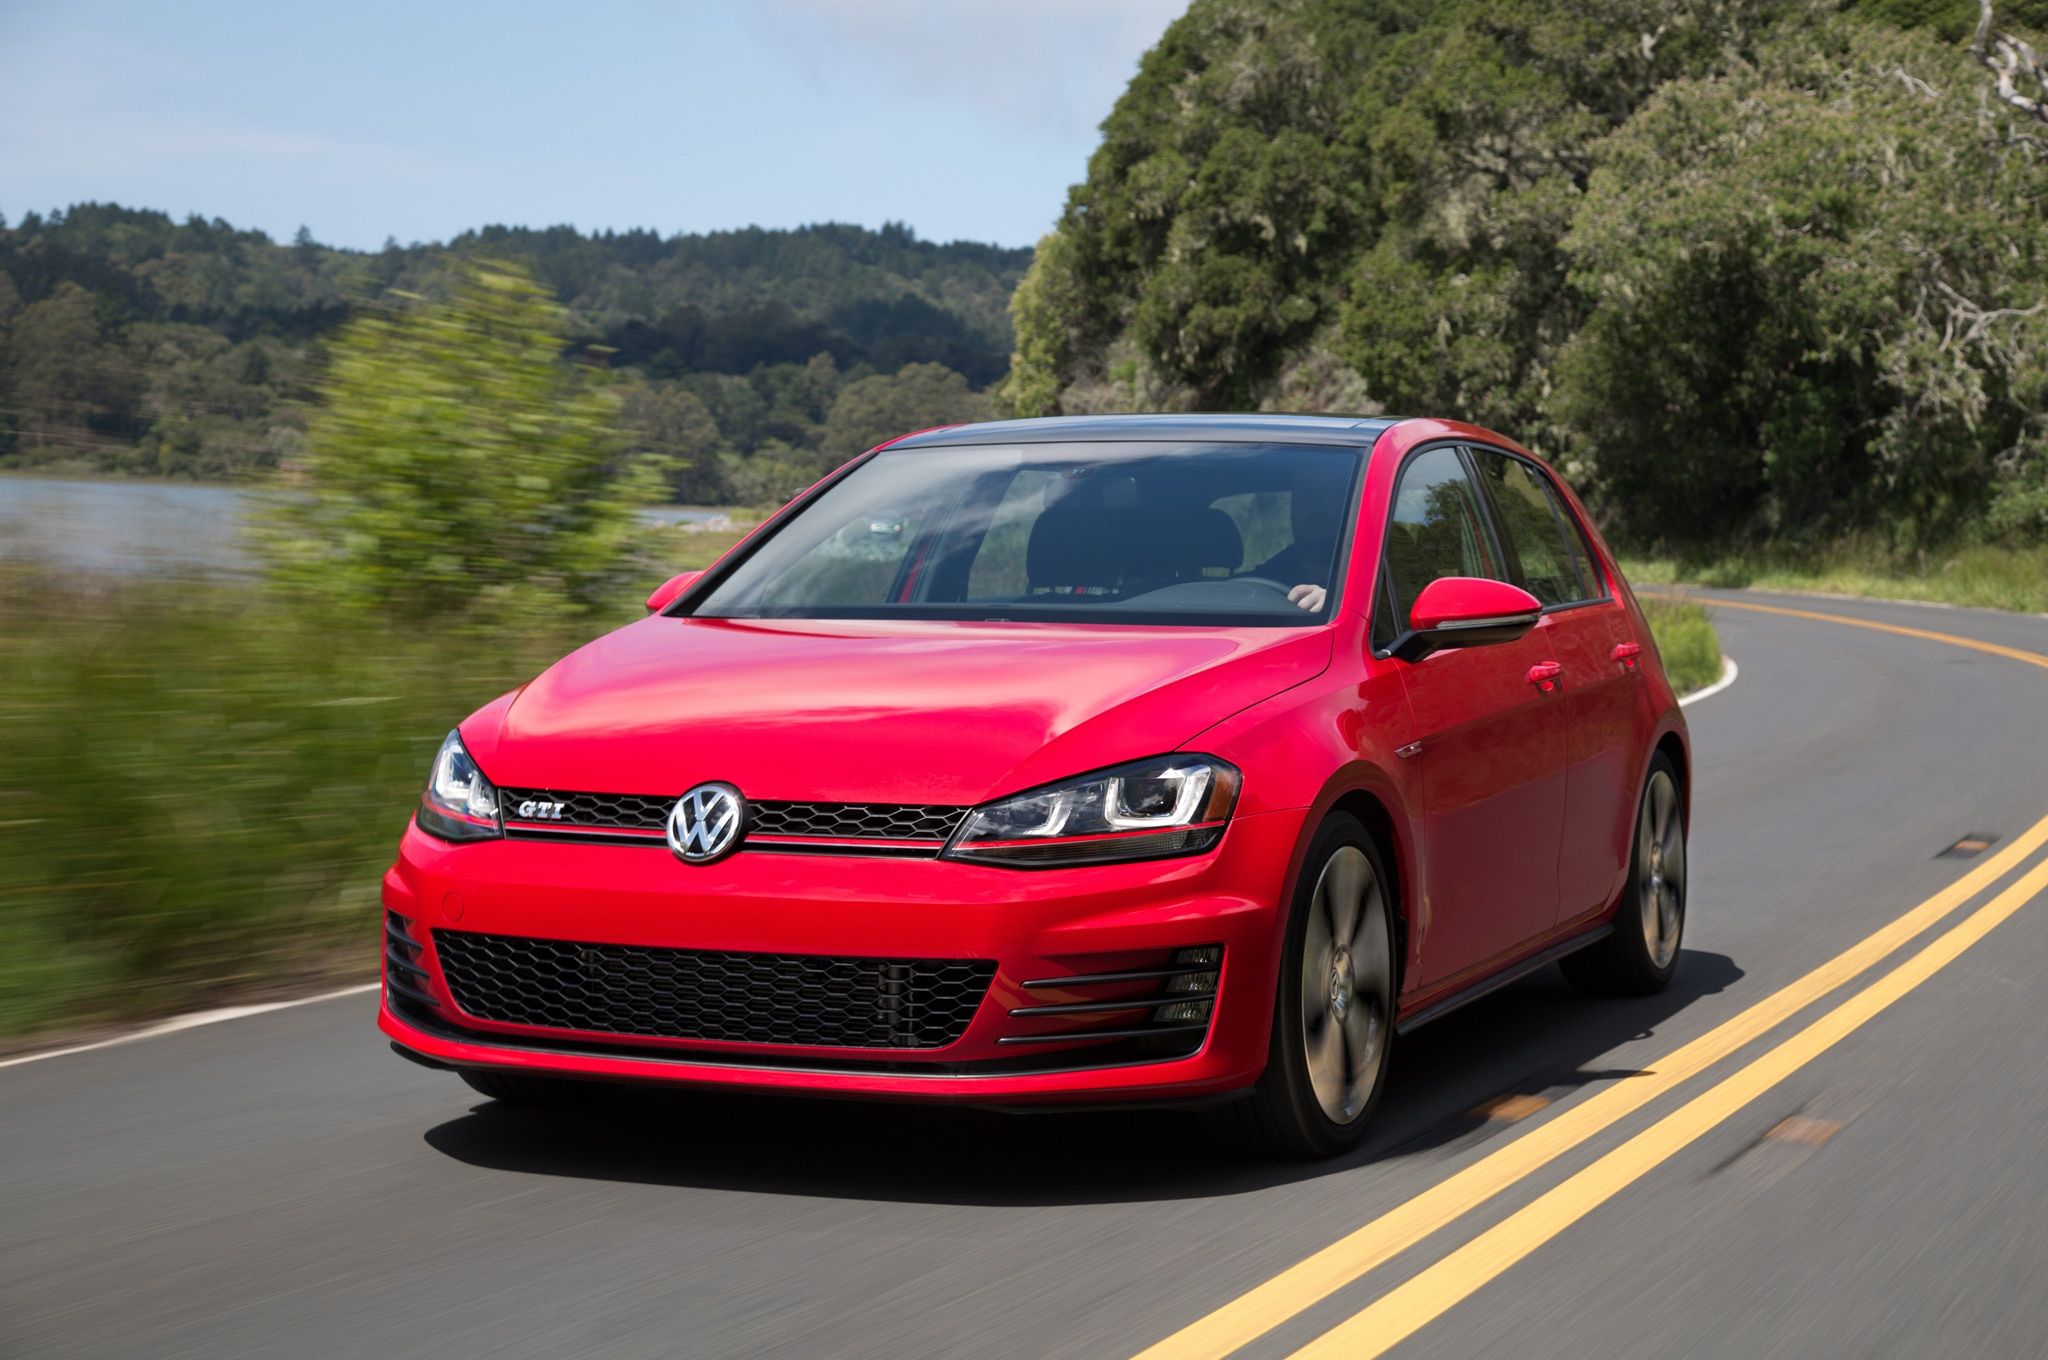 2015 Volkswagen Golf GTI Front Three Quarter In Motion1